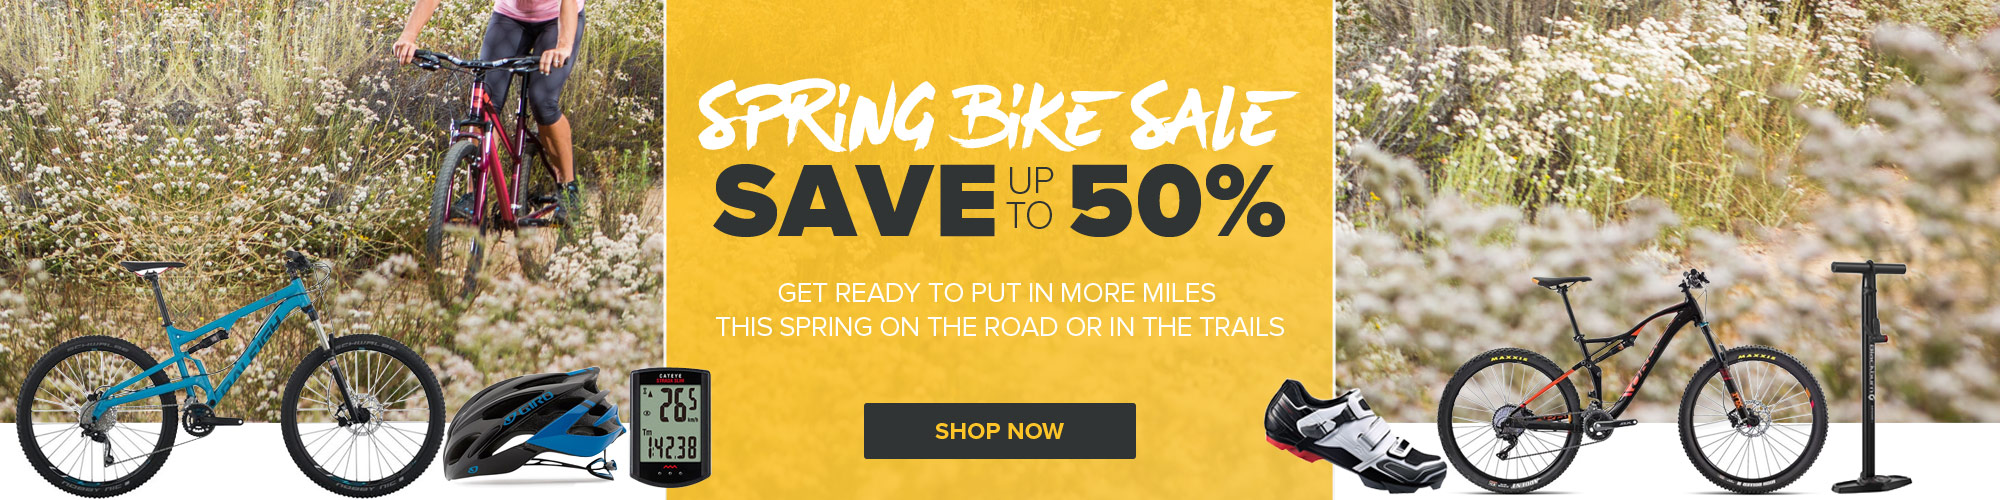 Spring Bike Sale - Save Up To 50% on Bikes and Bike Accessories